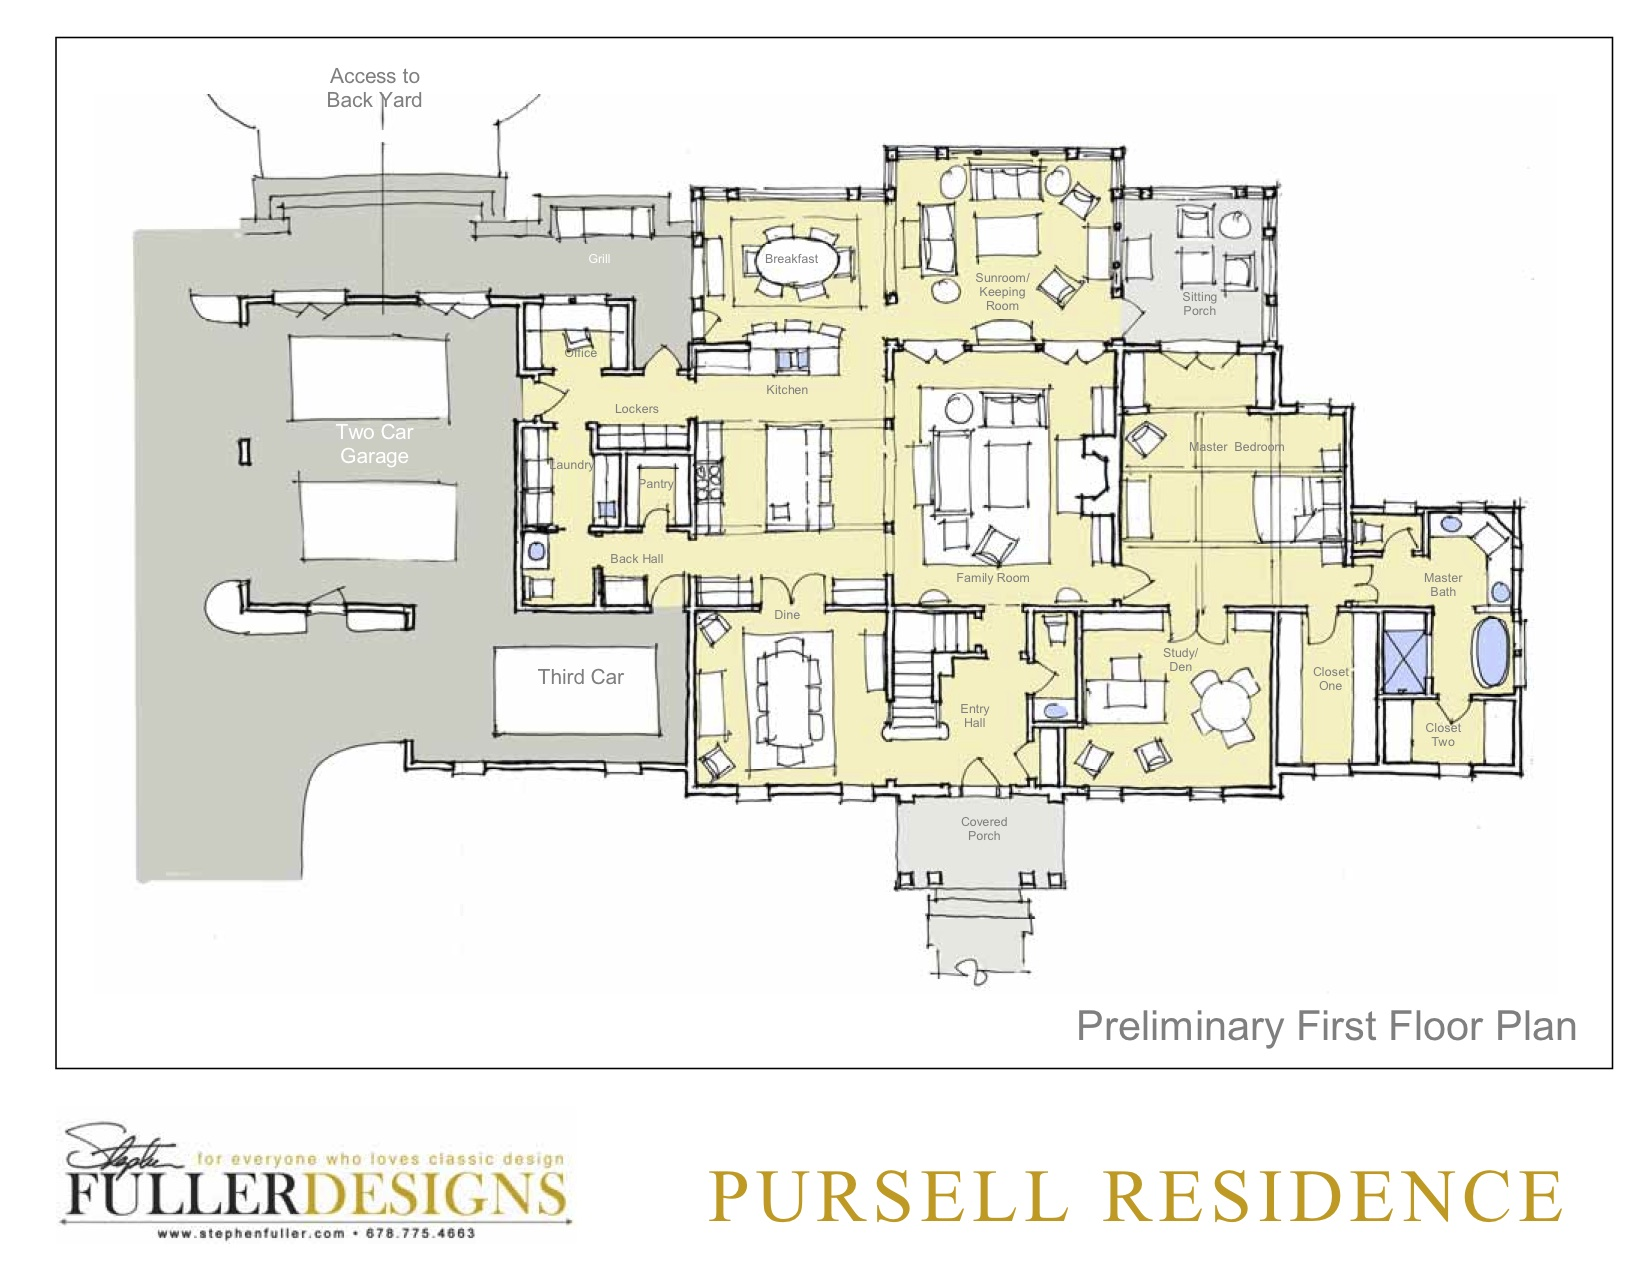 images about Plans on Pinterest   Mansion Floor Plans  Floor       images about Plans on Pinterest   Mansion Floor Plans  Floor Plans and Mansions